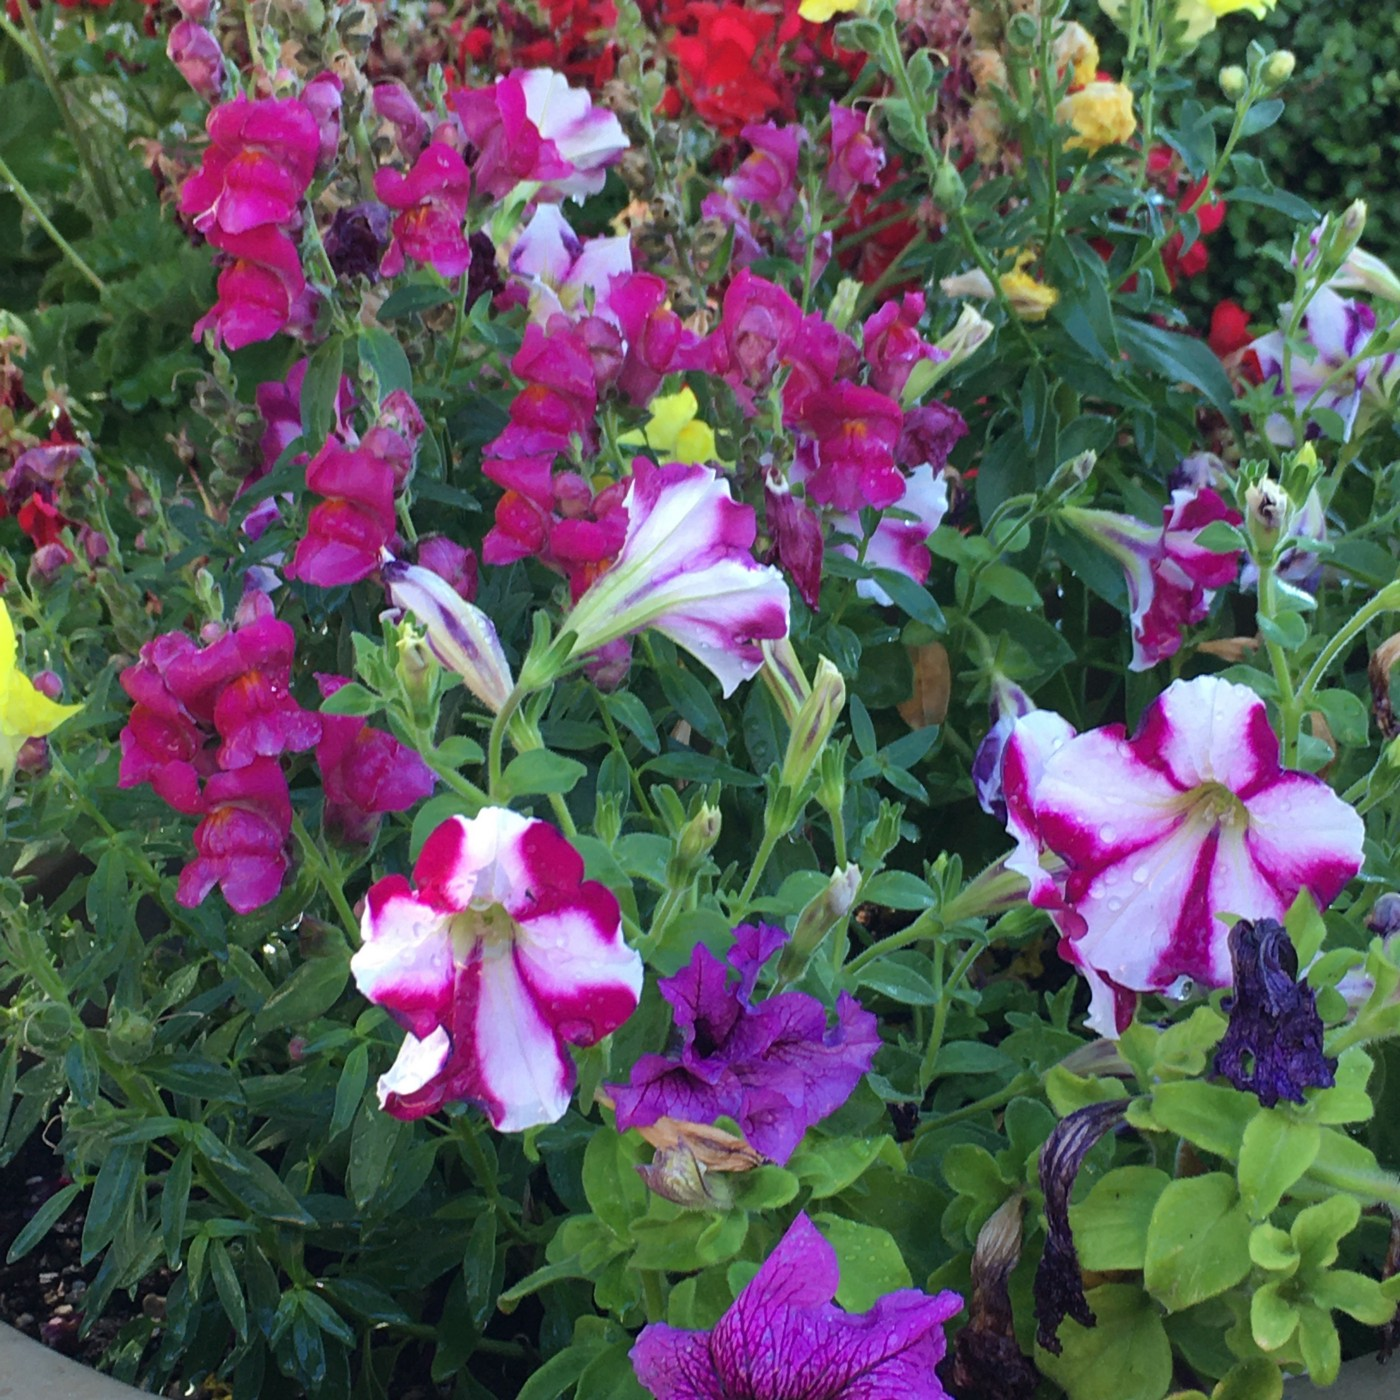 Multiple flowers, some magenta and white striped, some purple or bright pink, growing together.